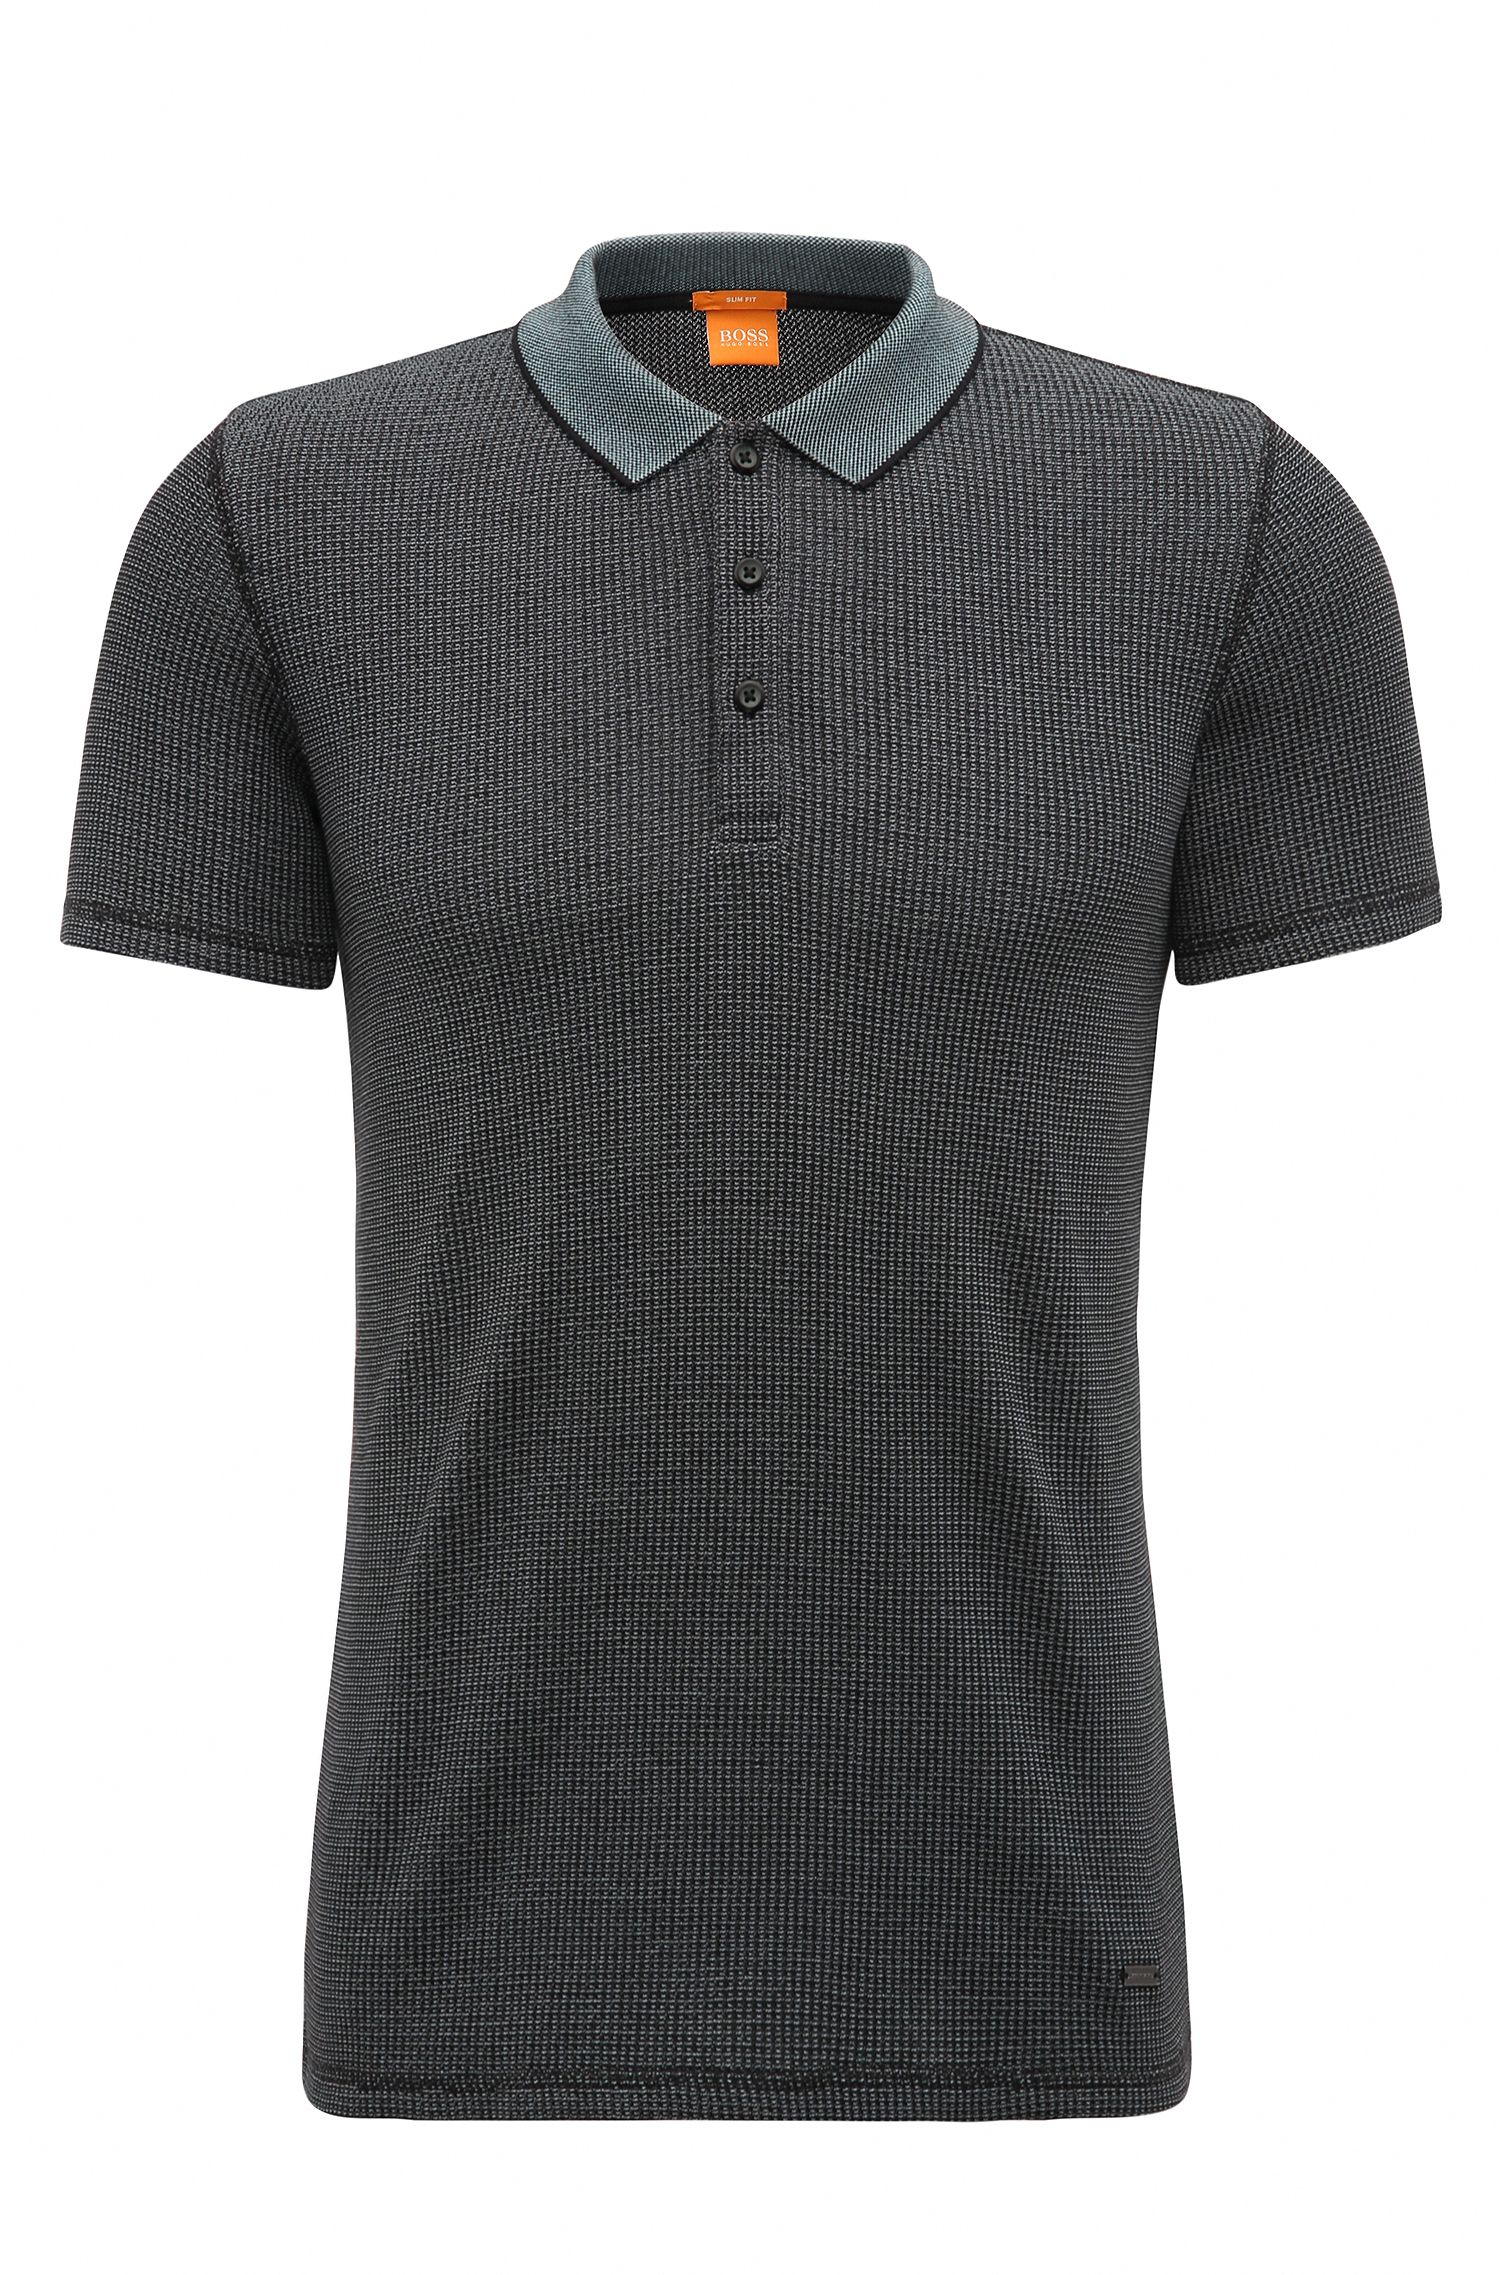 Knit Cotton Blend Polo Shirt, Slim Fit | Poser